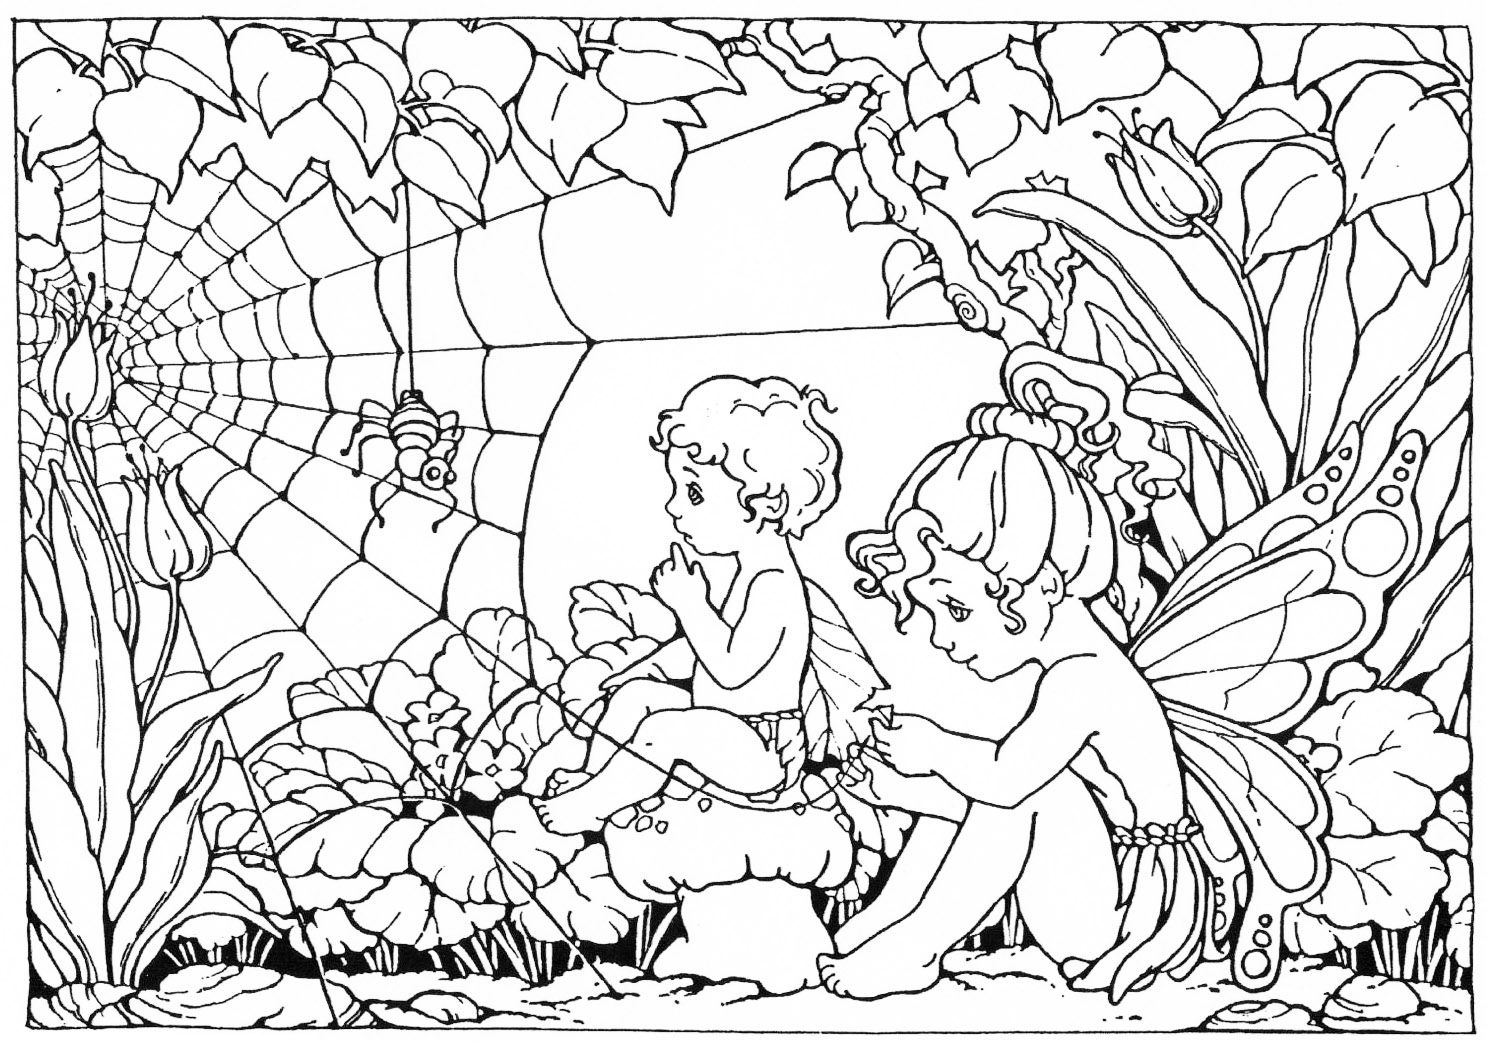 Coloring pictures to print for teens - Coloring Pages To Print For Teenagers Only Coloring Pages